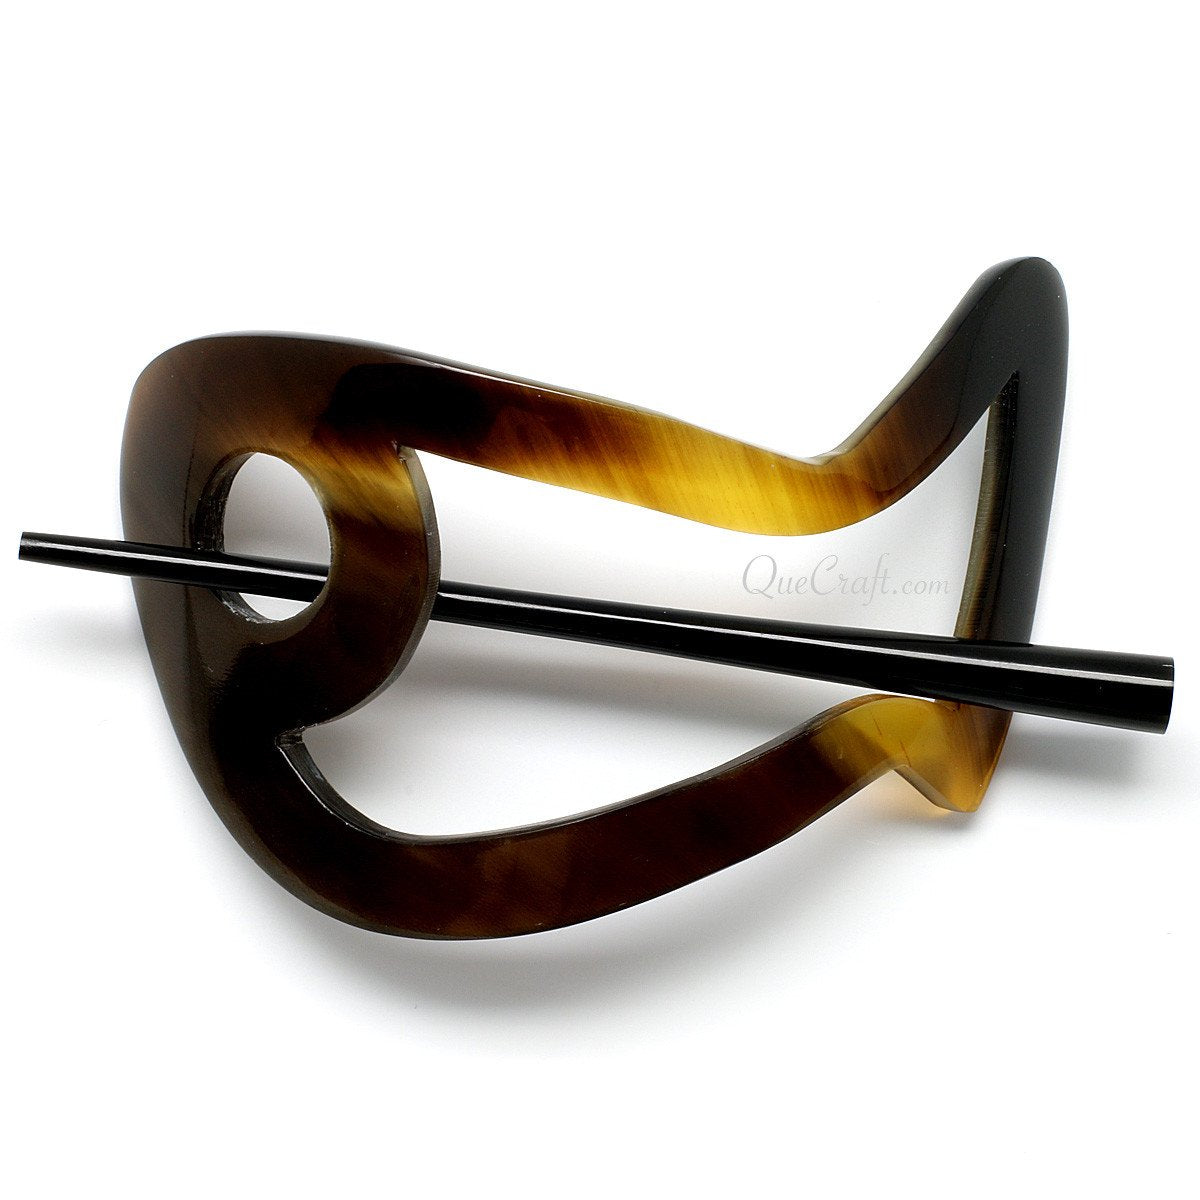 Horn Hair Barrette #10942 - HORN.JEWELRY by QueCraft